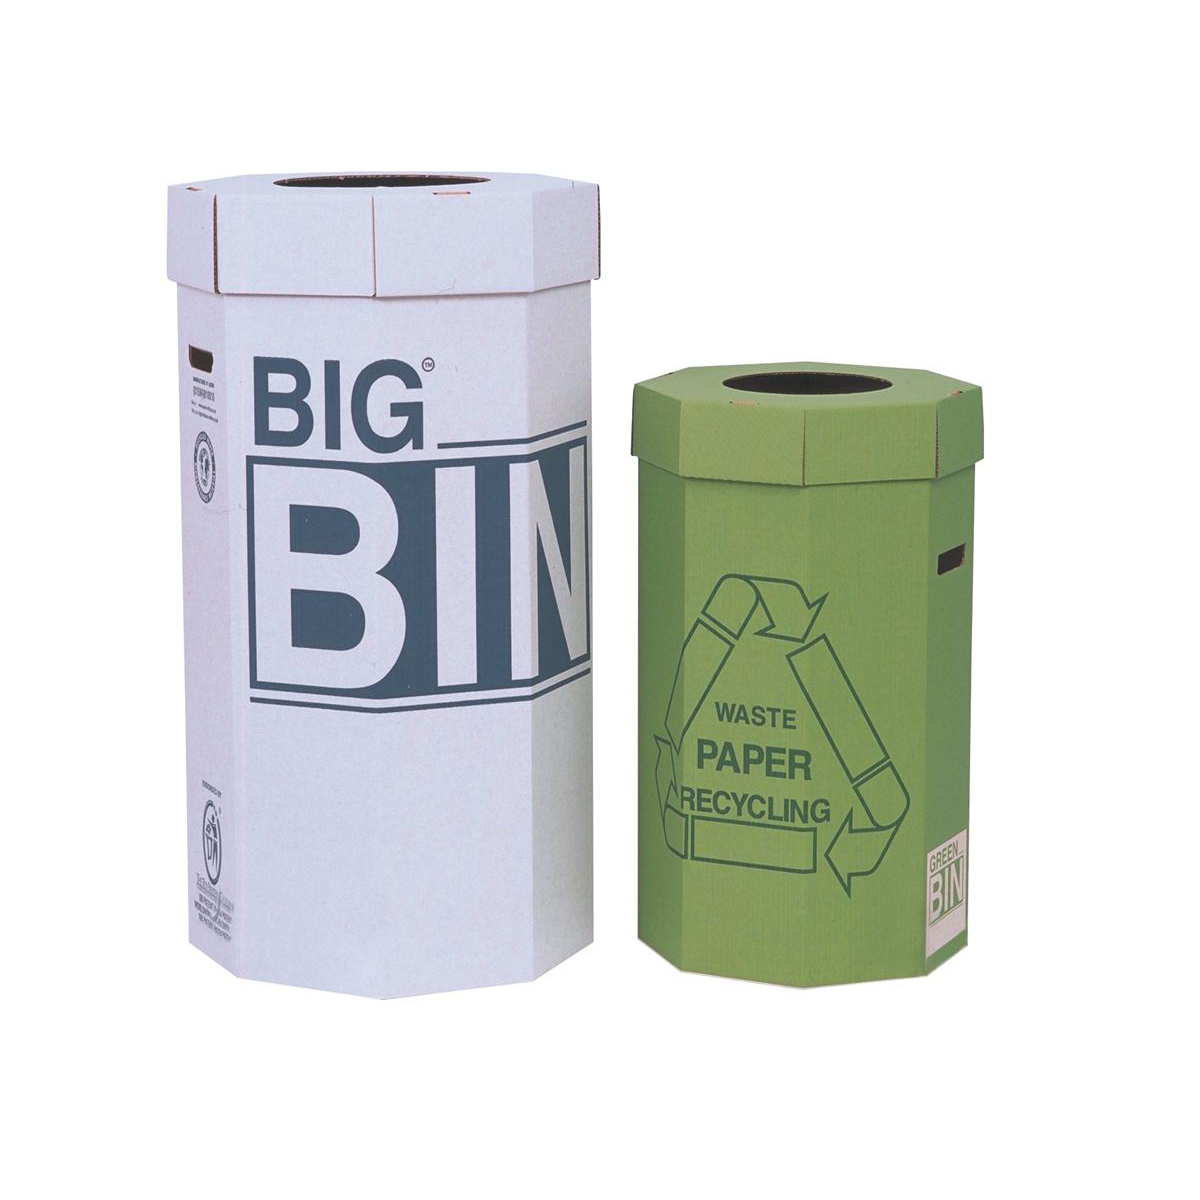 Acorn Large Bin Flat Packed Recycled Board Material 160 Litres 450x900mm White Ref 142958 Pack 5